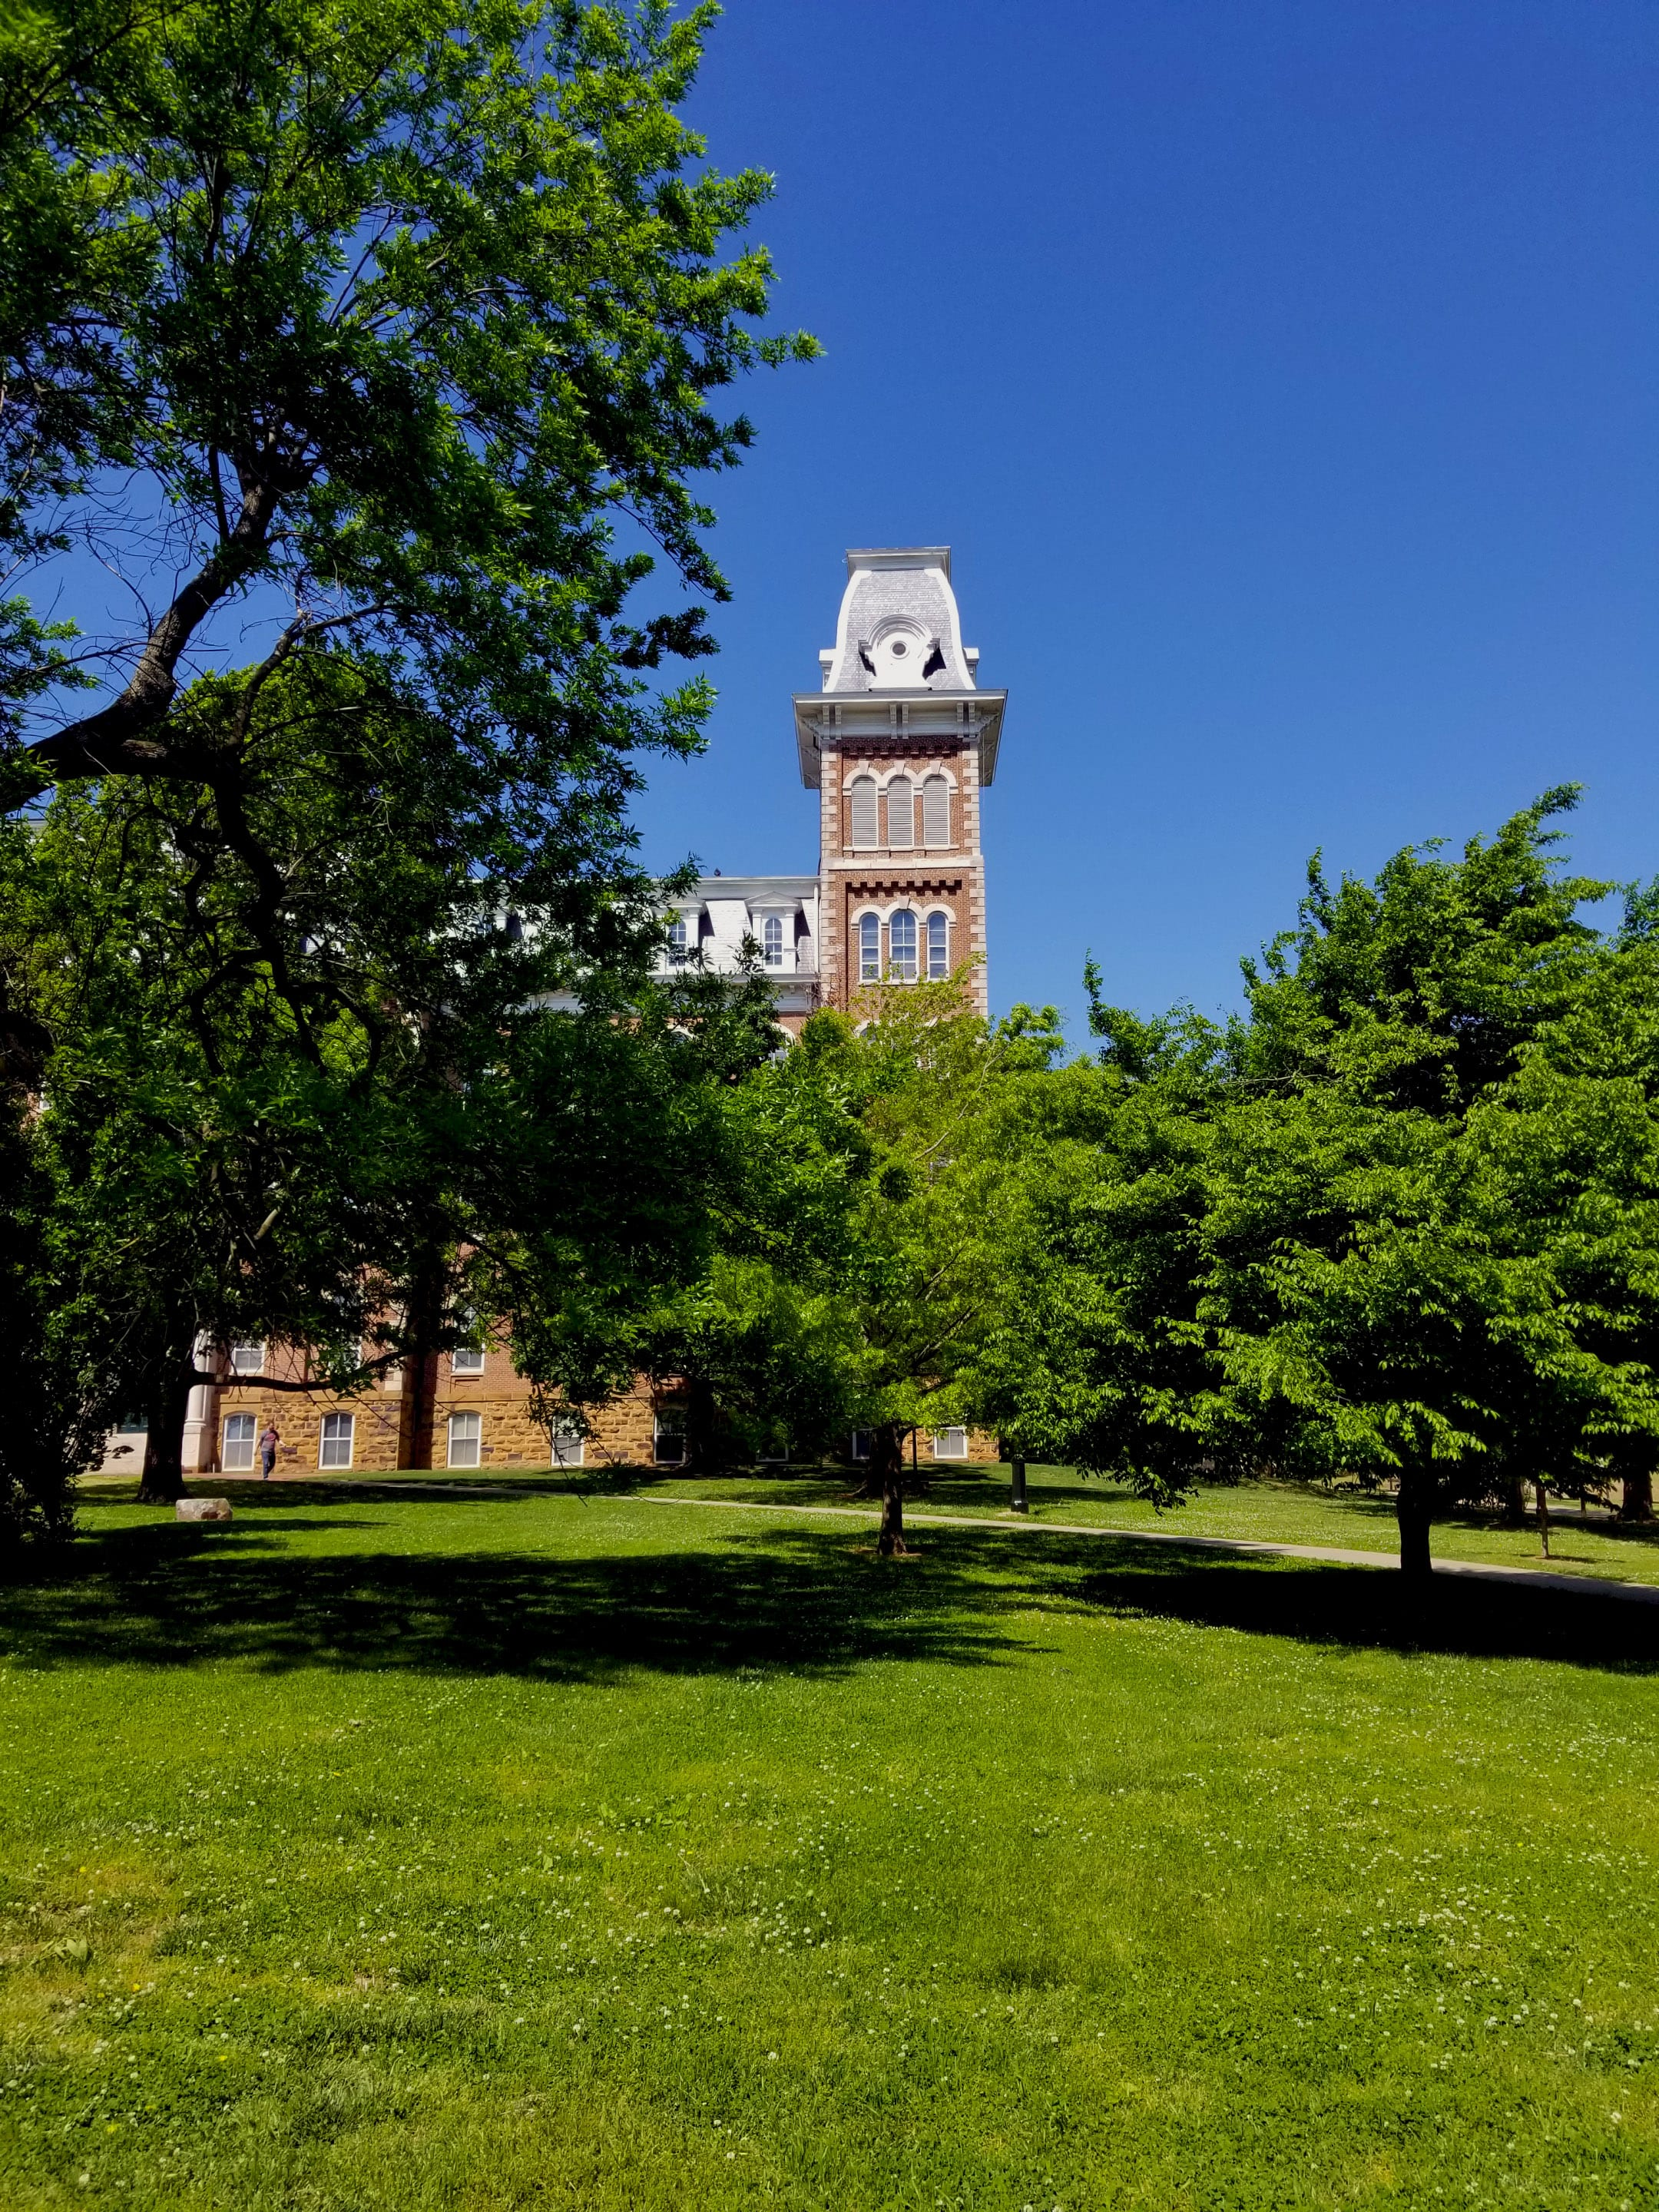 A view of the North Tower of Old Main from the East lawn